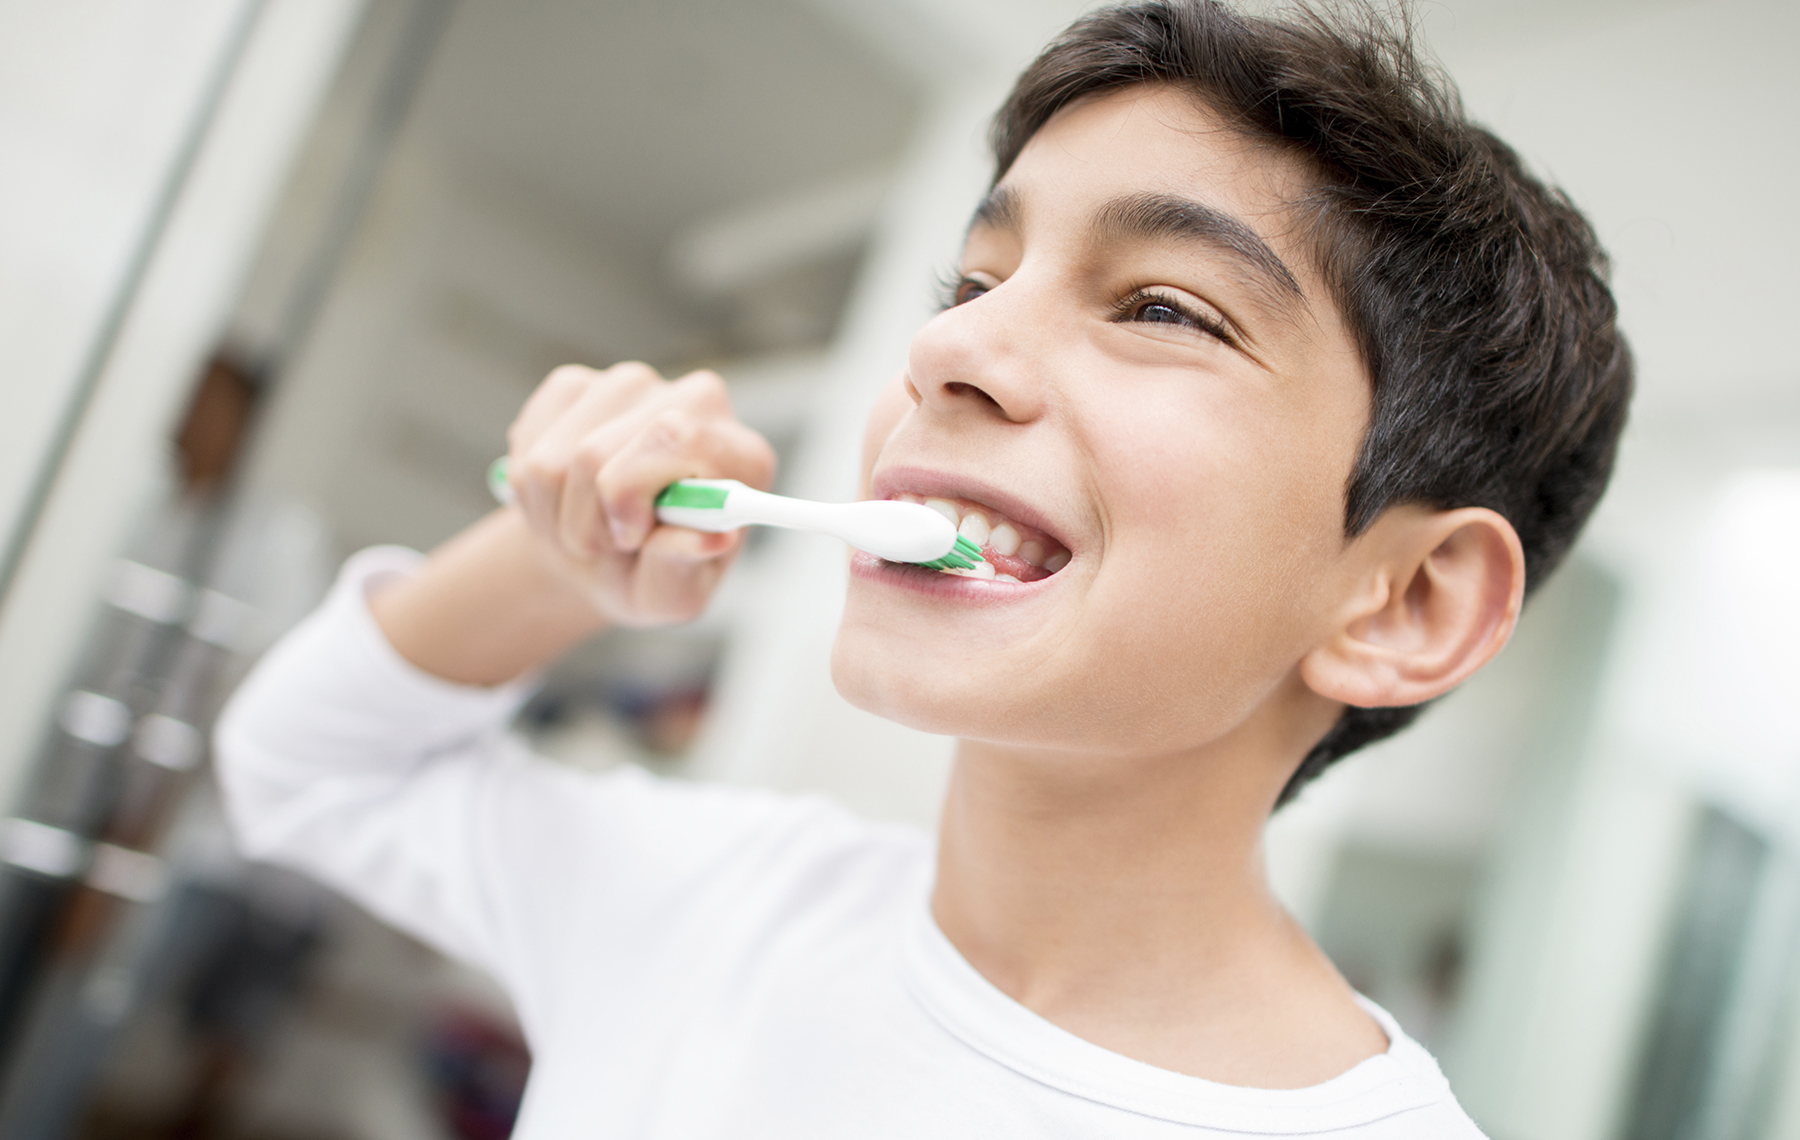 AltaMed tween boy in white shirt brushing teeth